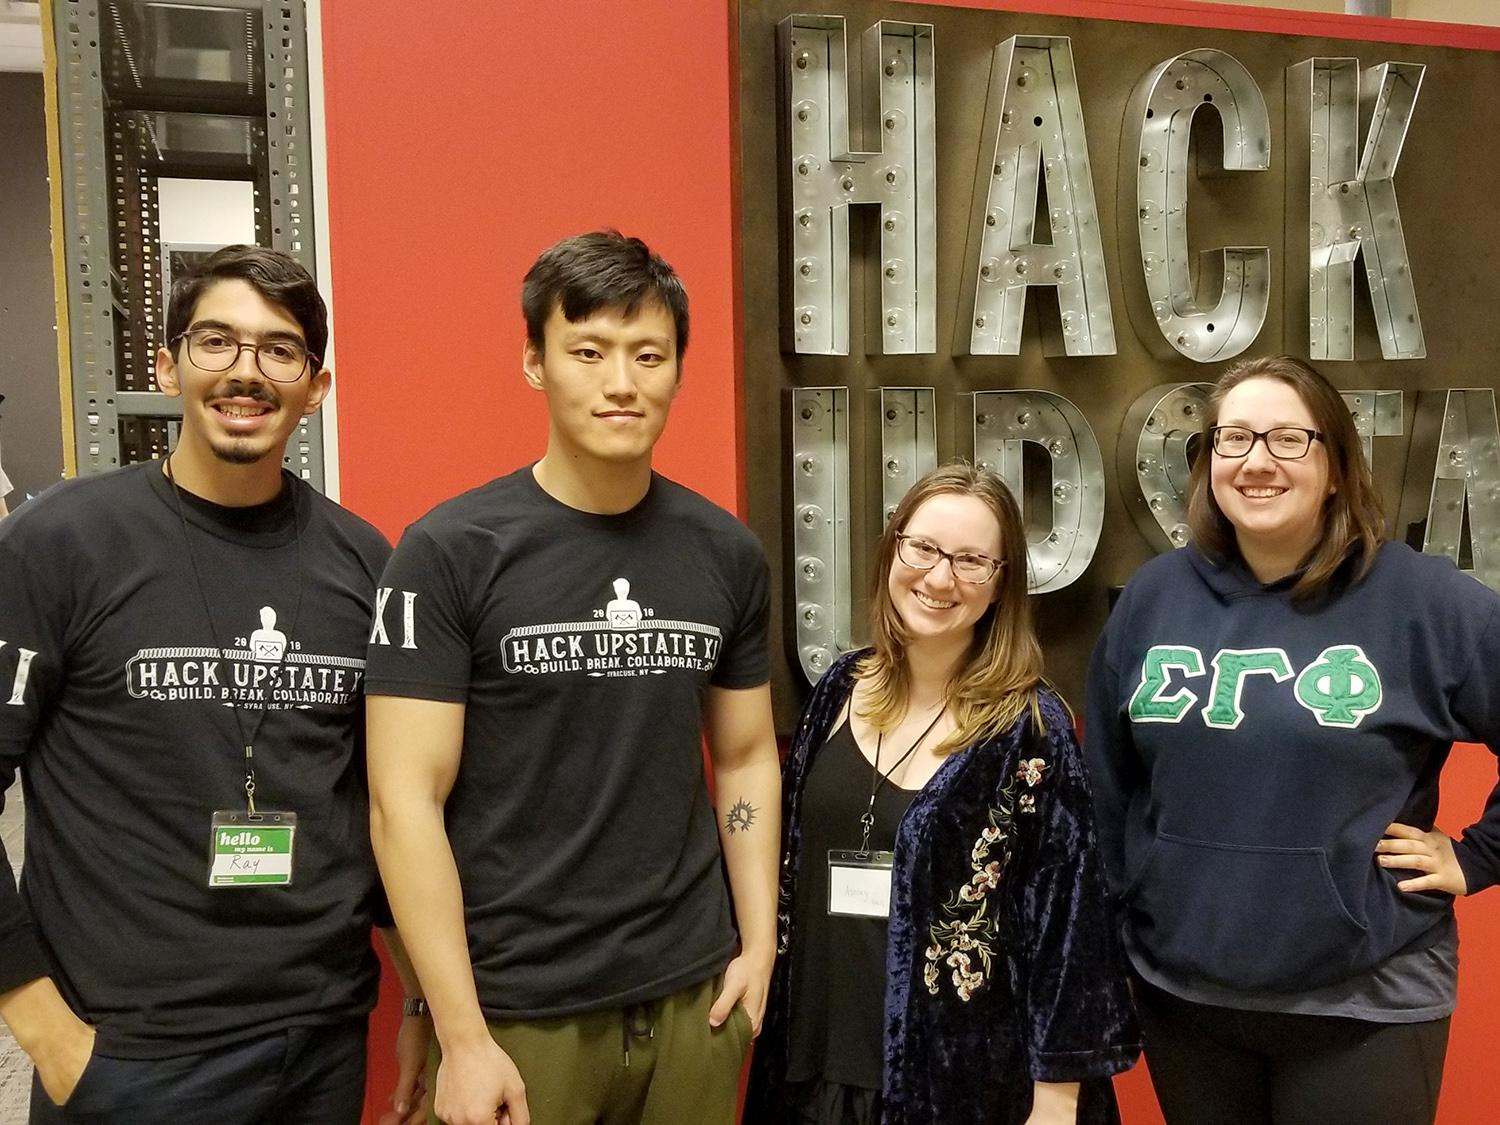 Student stand in front of the Hack Upstate sign